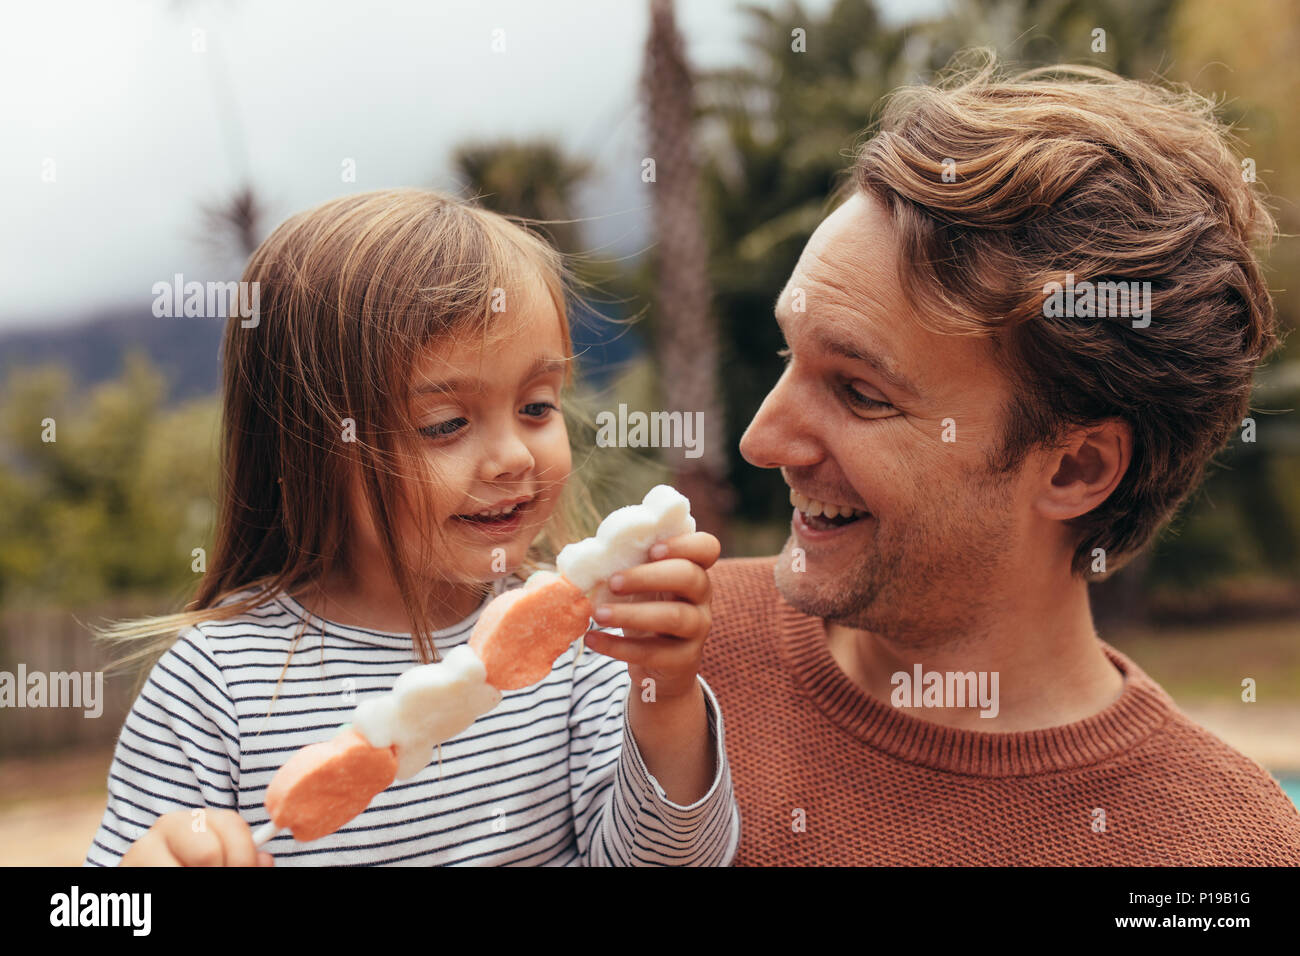 Happy daughter with her father holding a sugar candy stick outdoors. Father and daughter spending time together eating sugar candy. - Stock Image